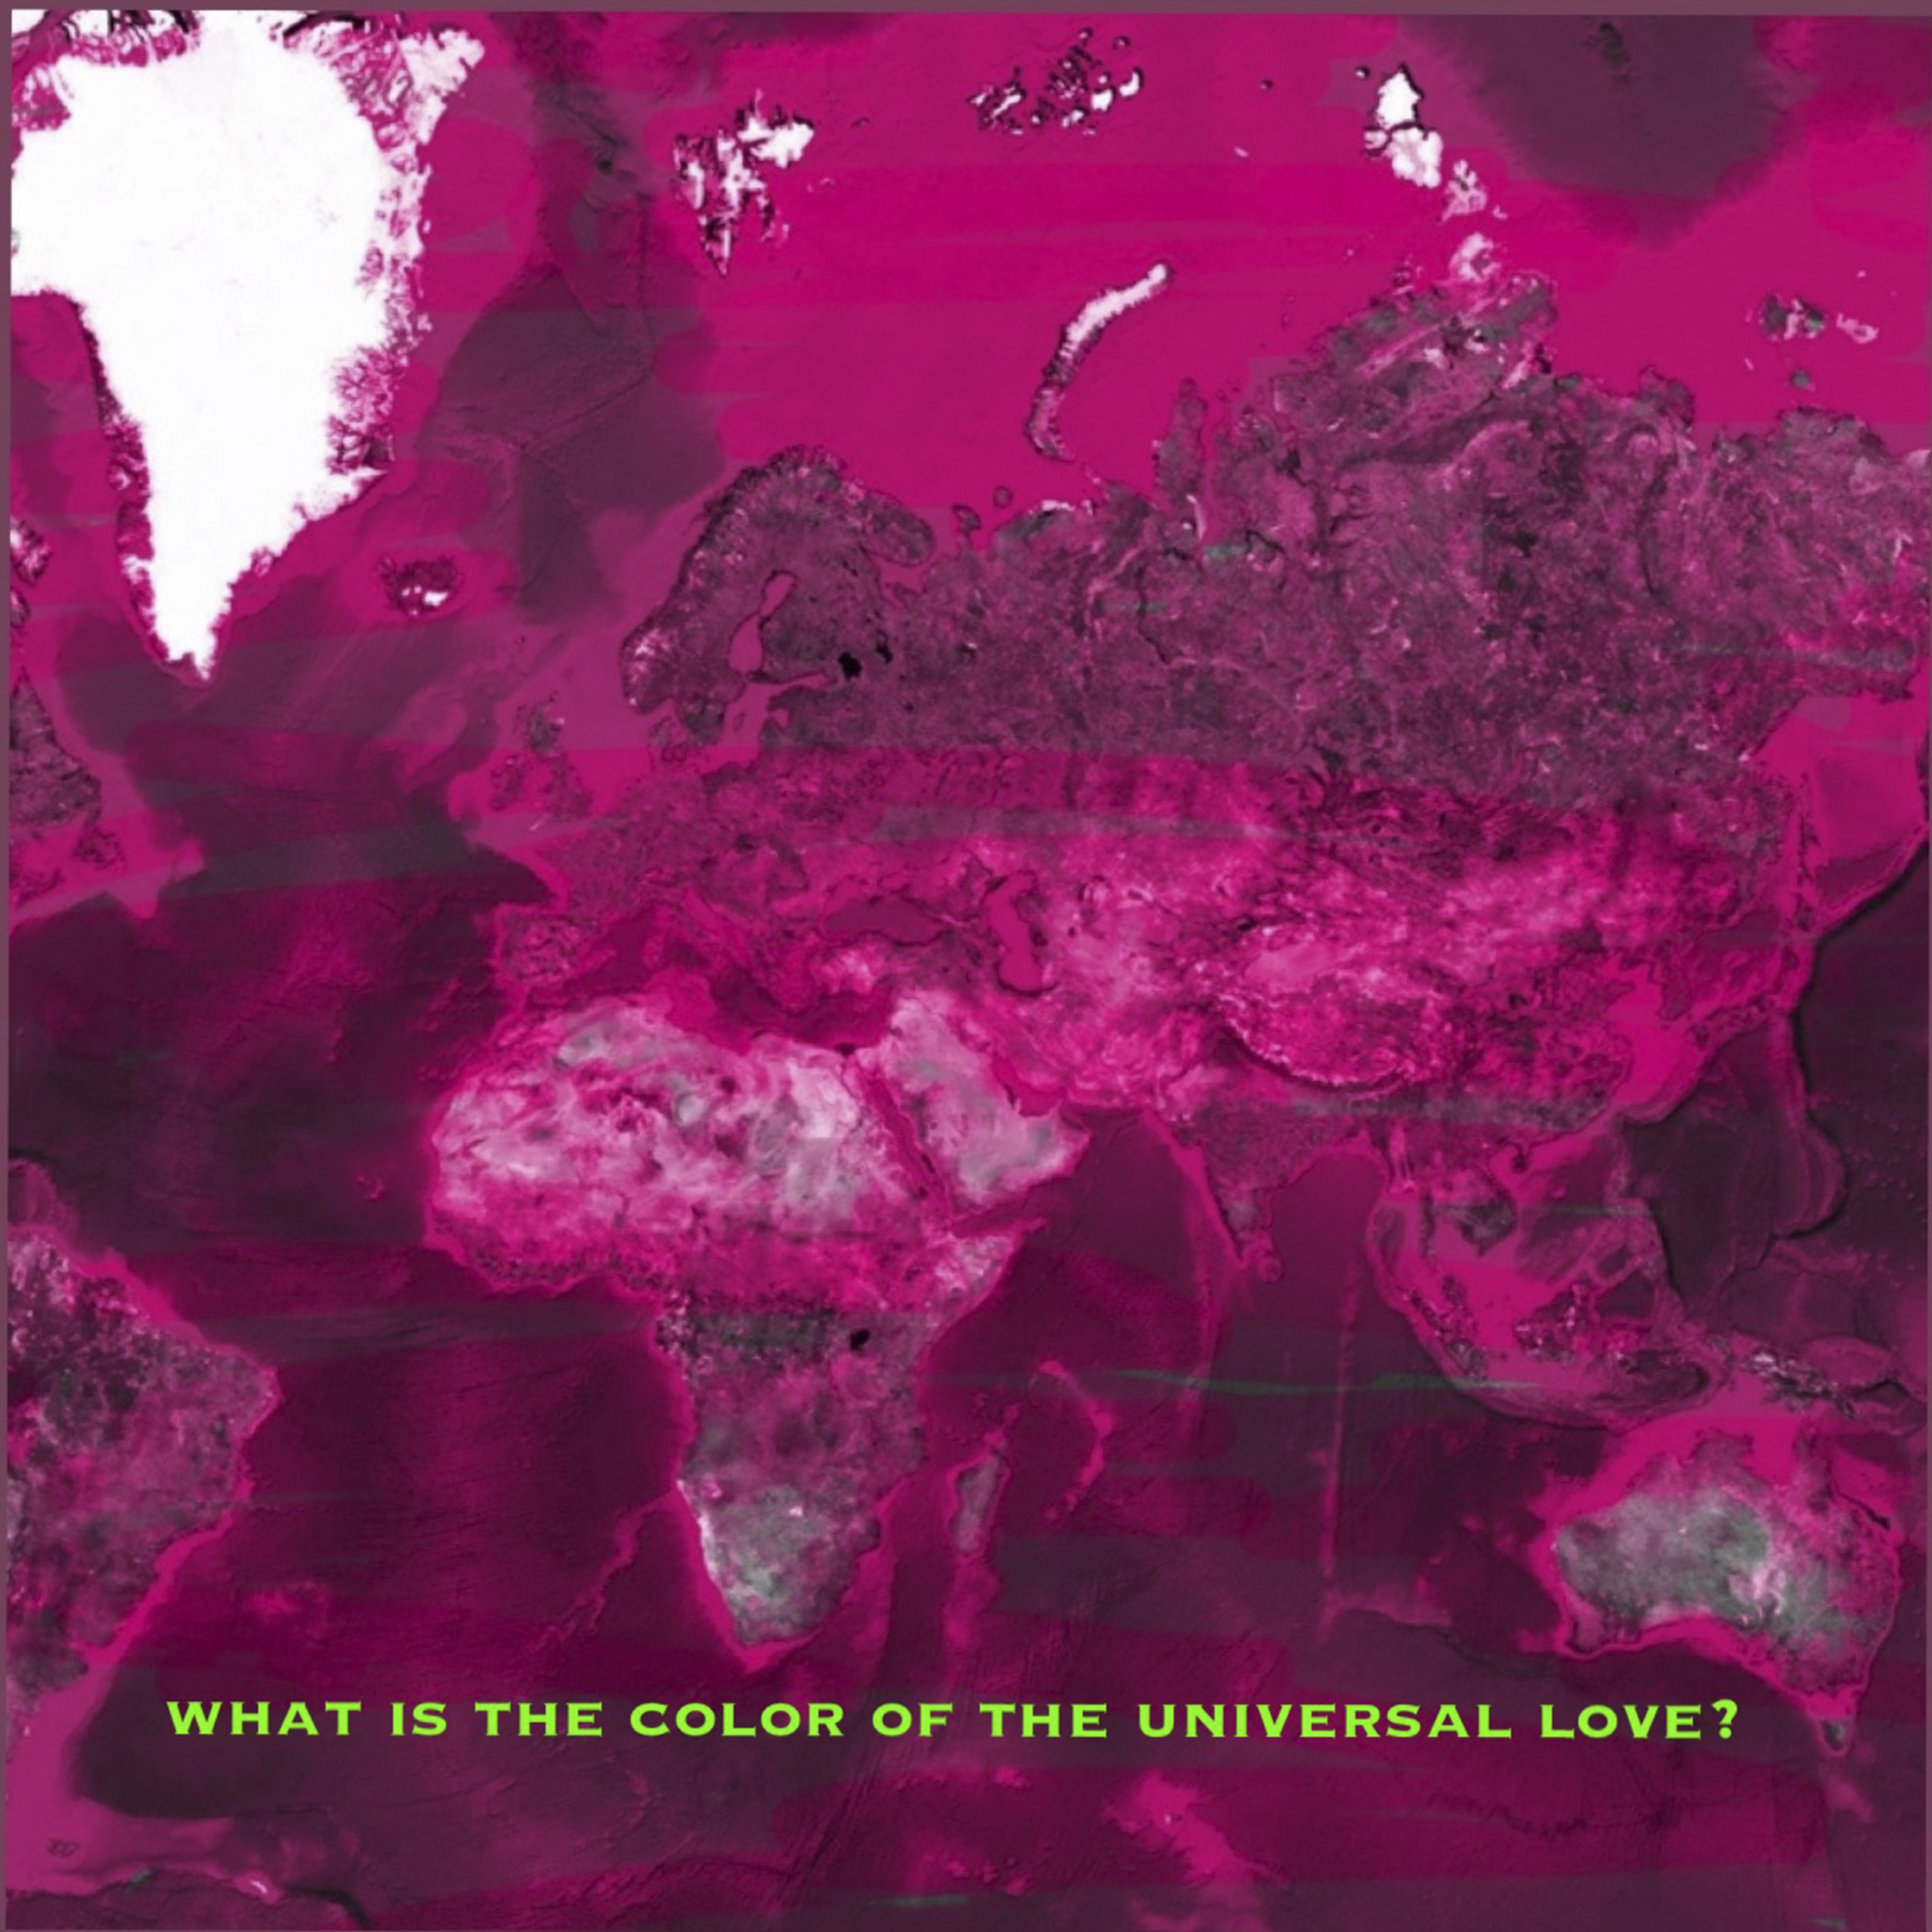 What is the color of universal love